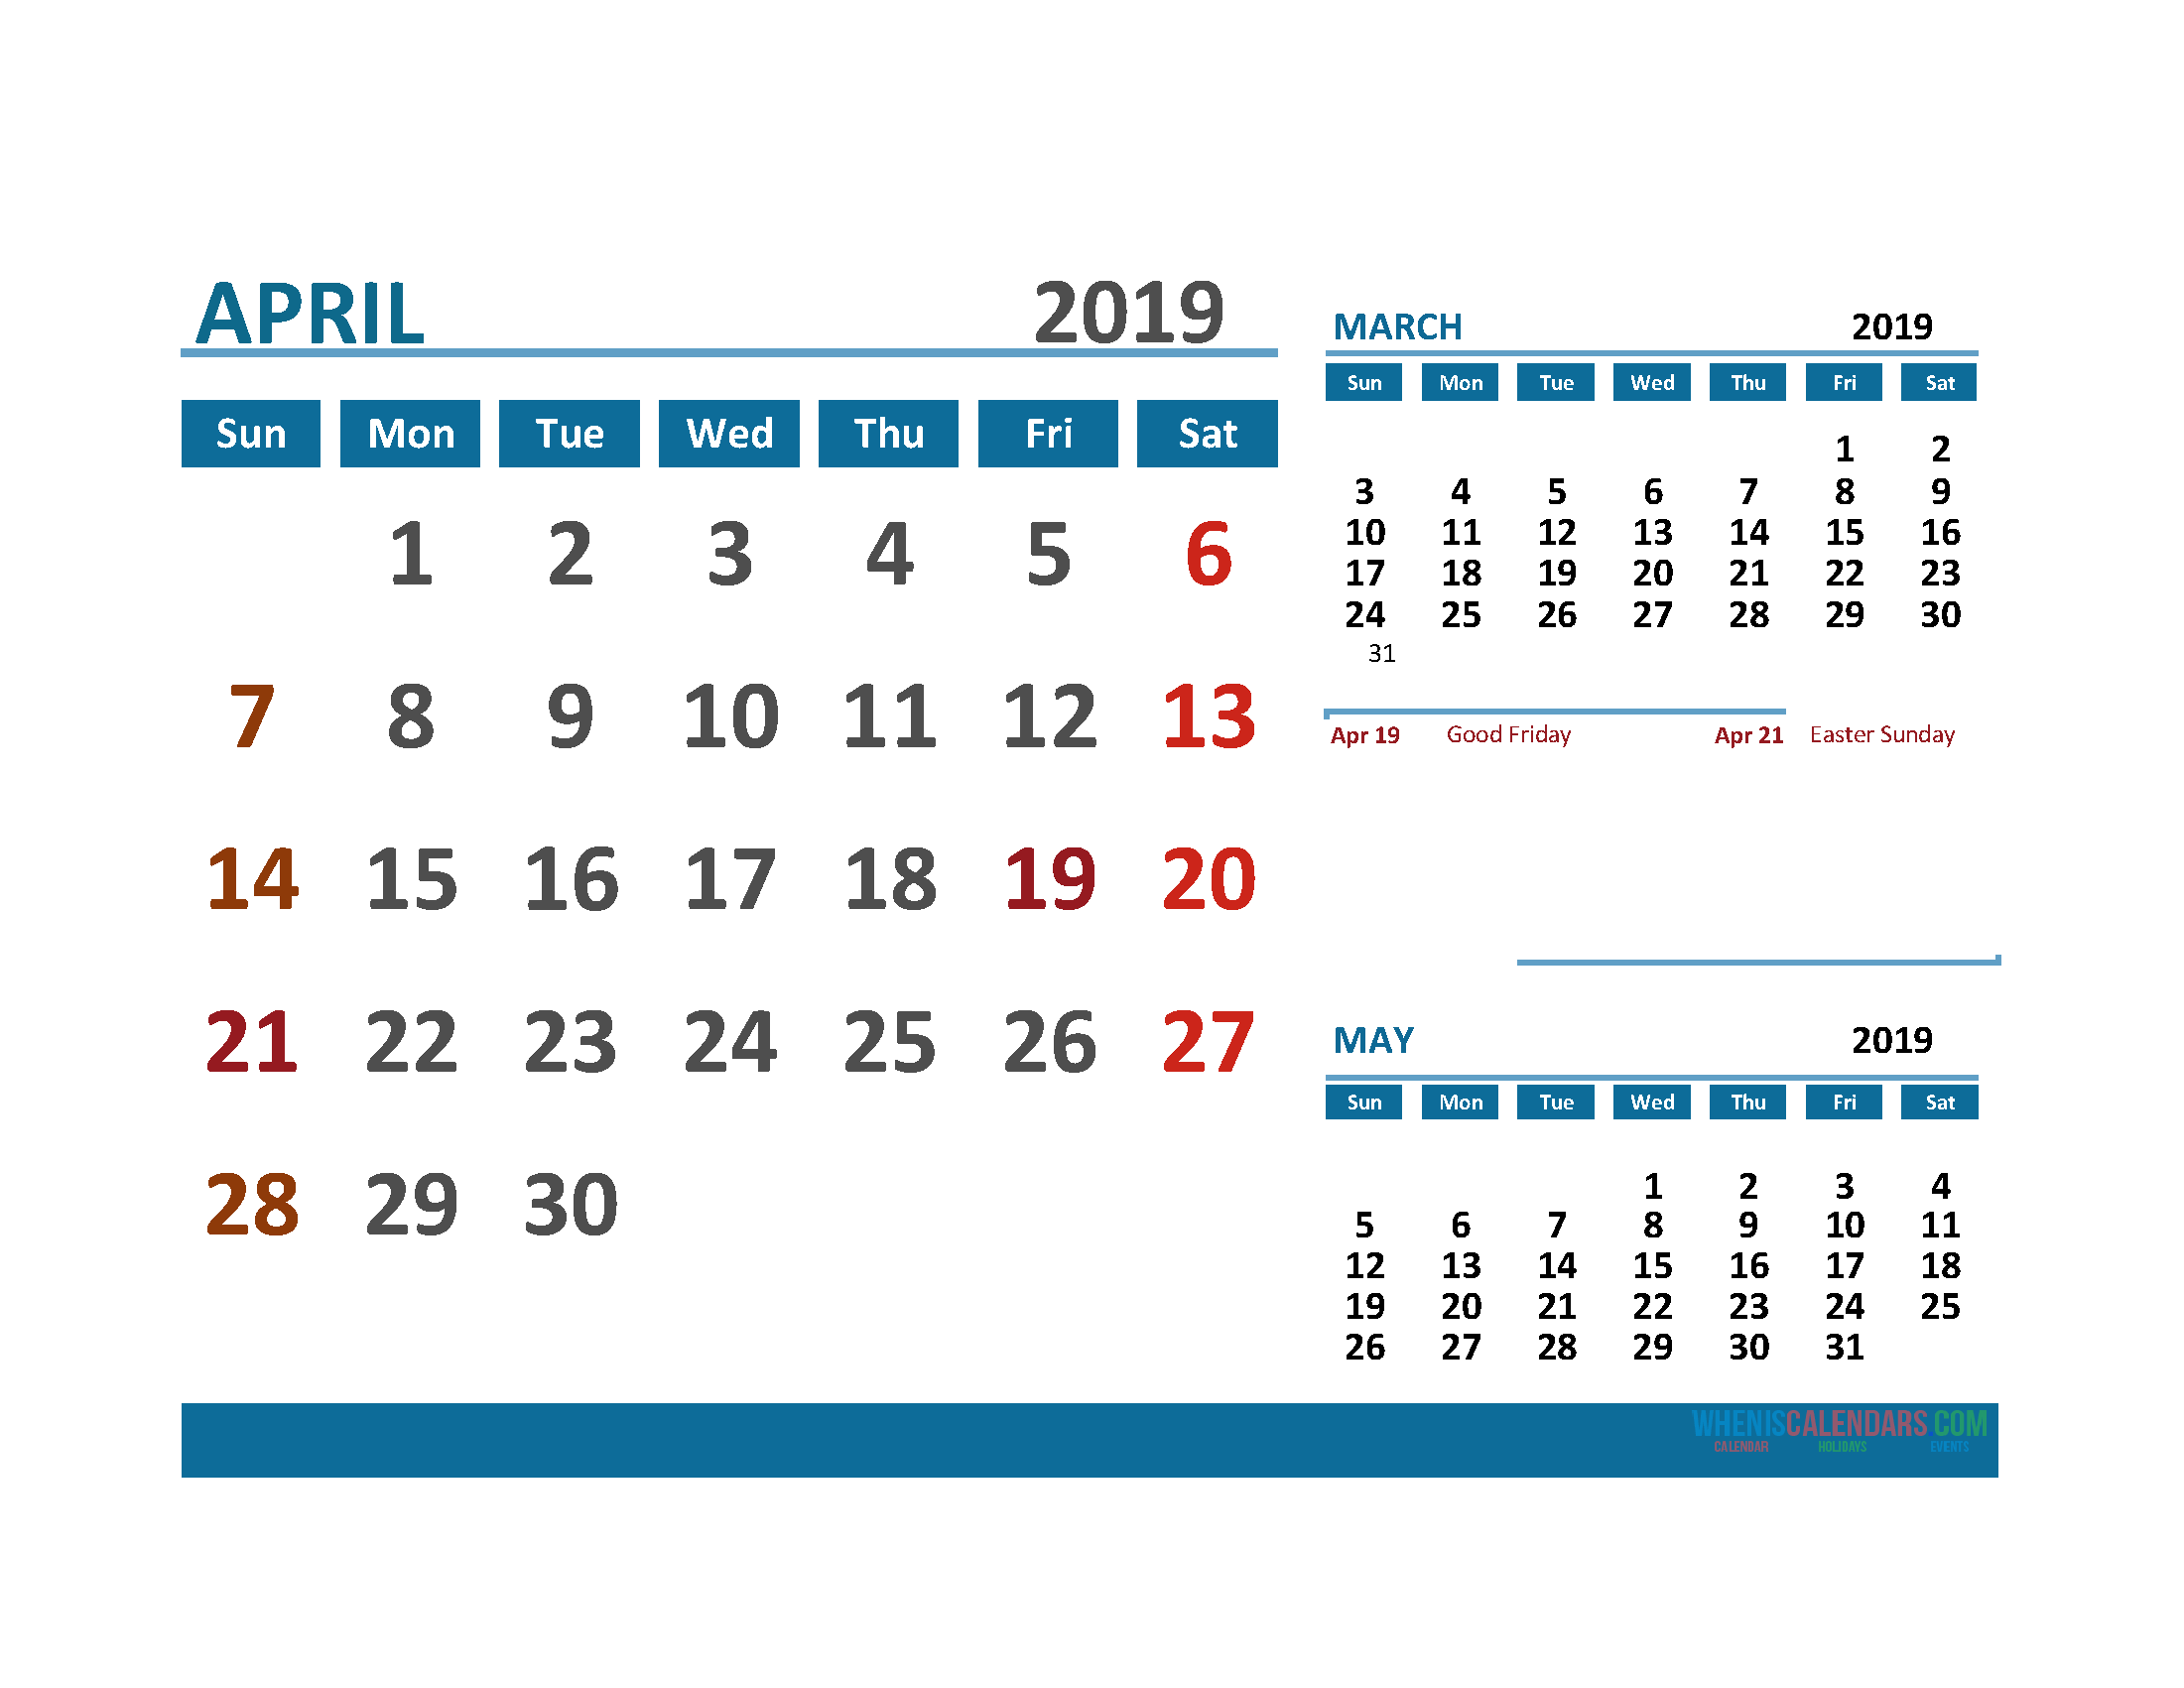 printable calendar april 2019 with holidays 1 month on 1